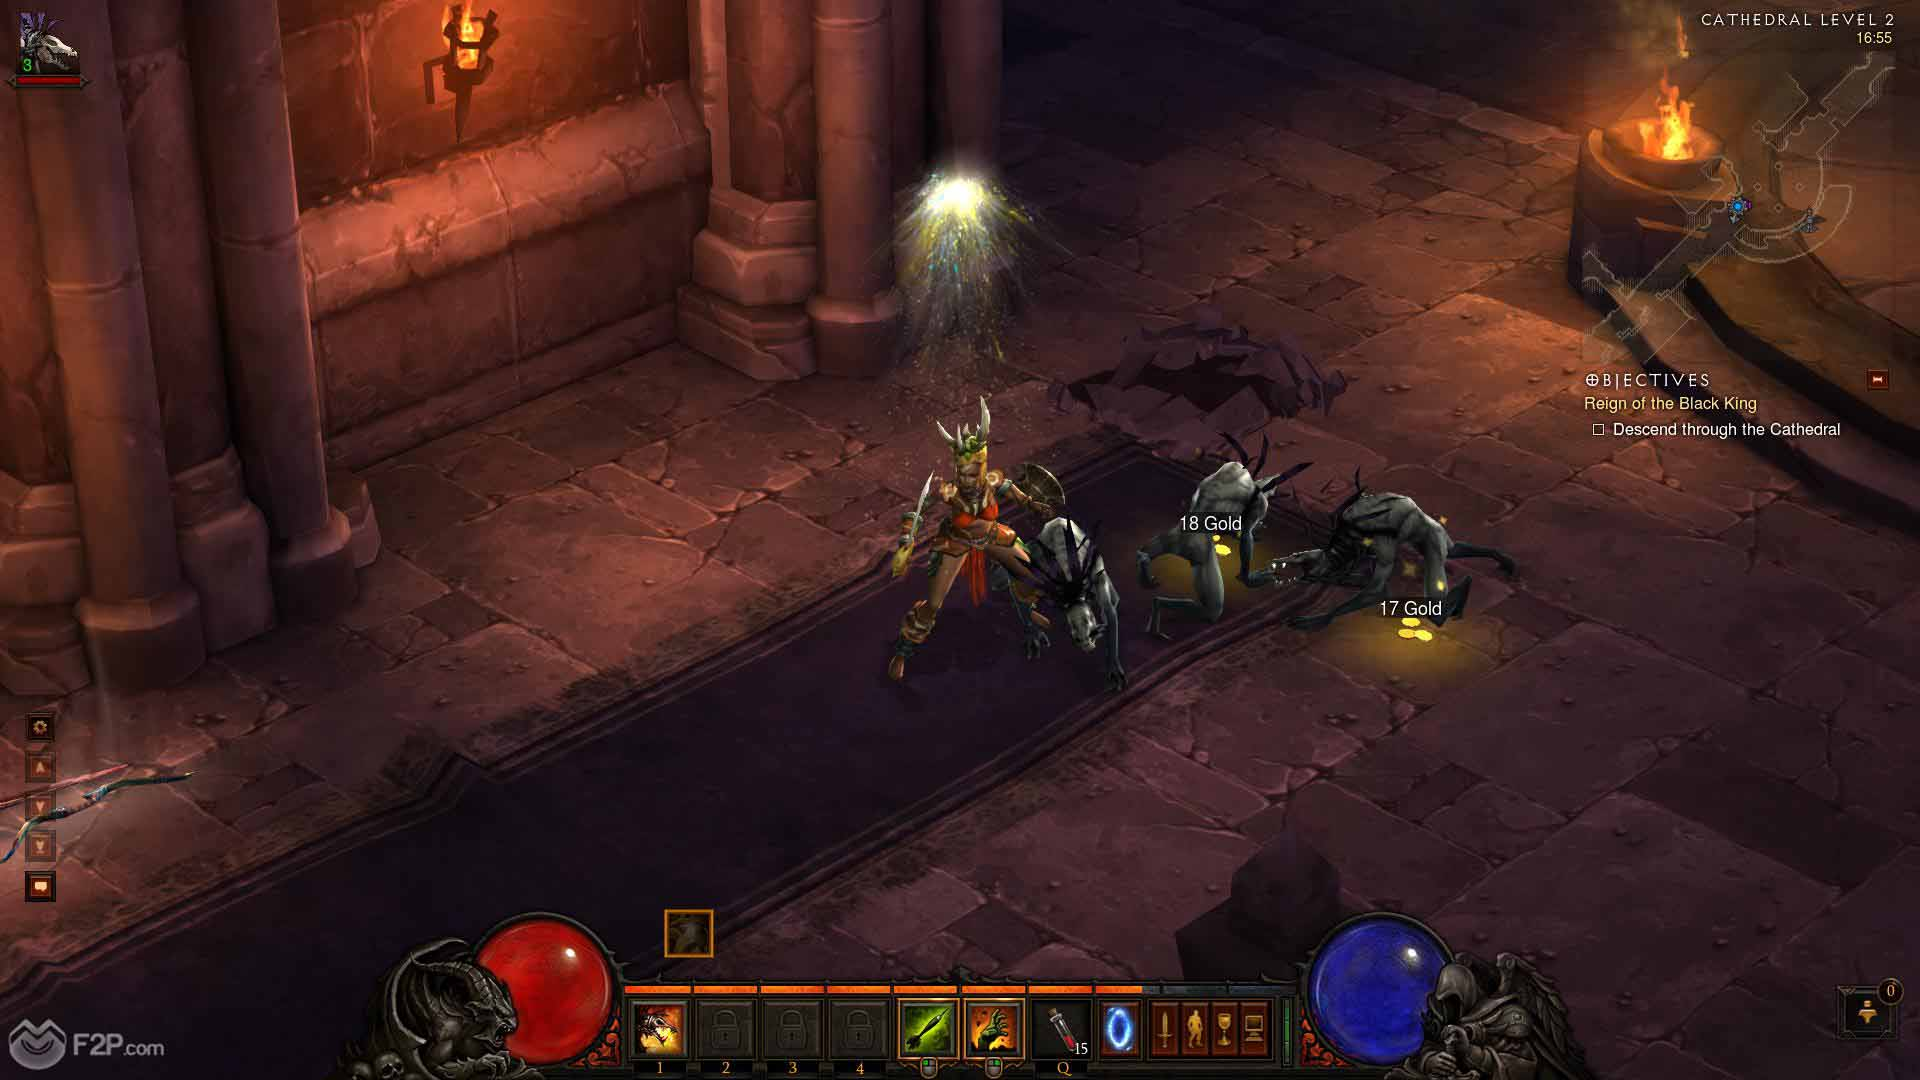 Click image for larger version. Name:	Diablo 3 screenshots (3) copia_1.jpg Views:	52 Size:	113.6 KB ID:	15036